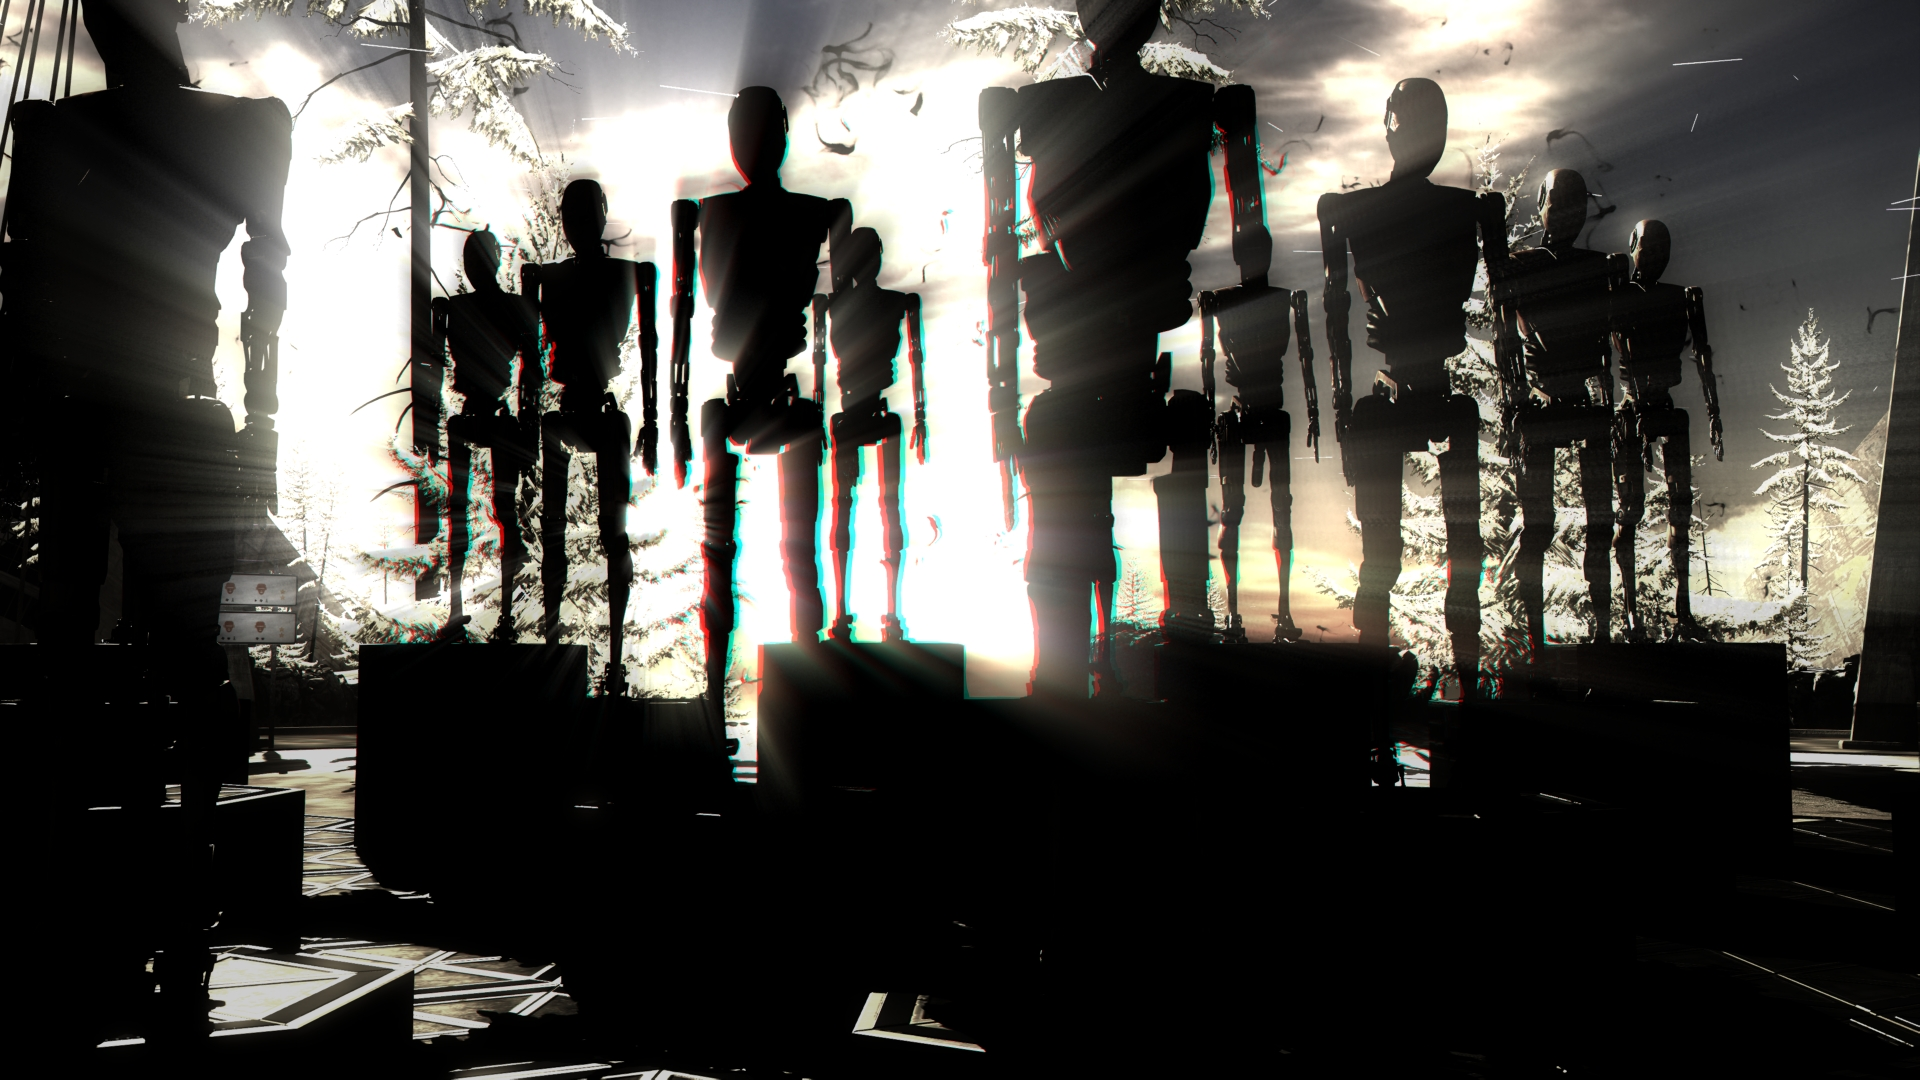 The Talos Principle Players Will Travel The Road To